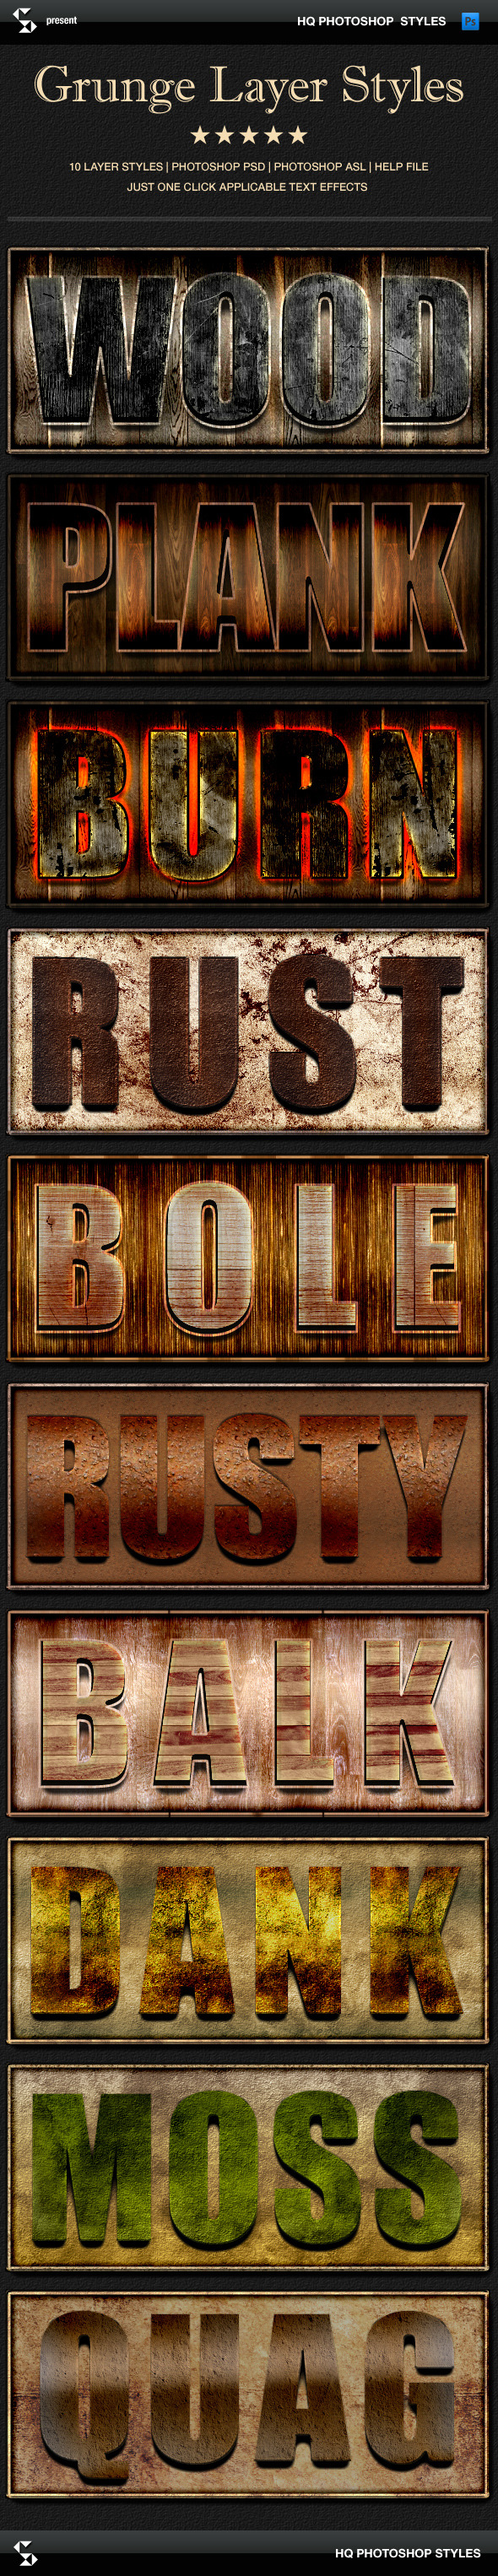 Grunge layer styles - wood, rust, nature - Text Effects Styles